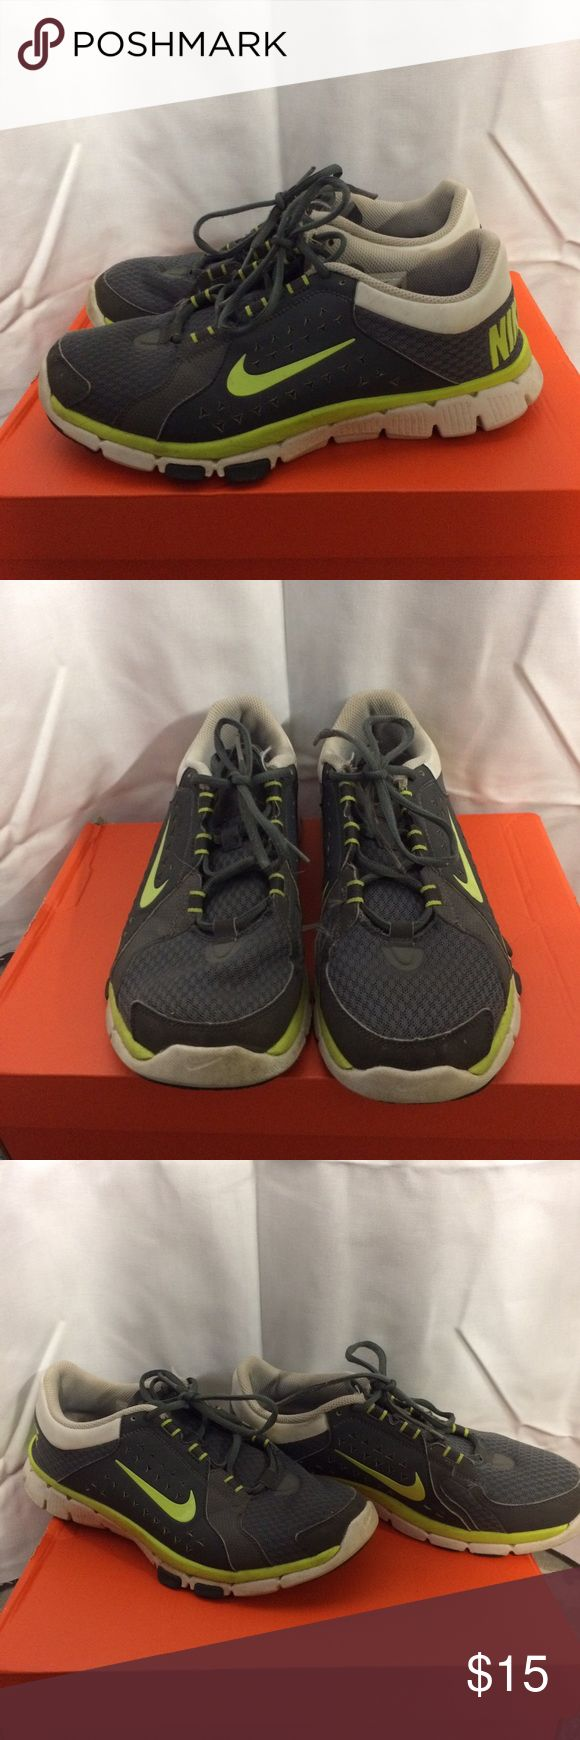 Size 9 Men's Nike Flex Sneakers Size 9 Men's gray, white and neon green Nike flex sneakers. Worn a good amount, in okay condition. A little fraying here and there near the laces, but still fully comfortable and functional. Feel free to make an offer. Nike Shoes Sneakers